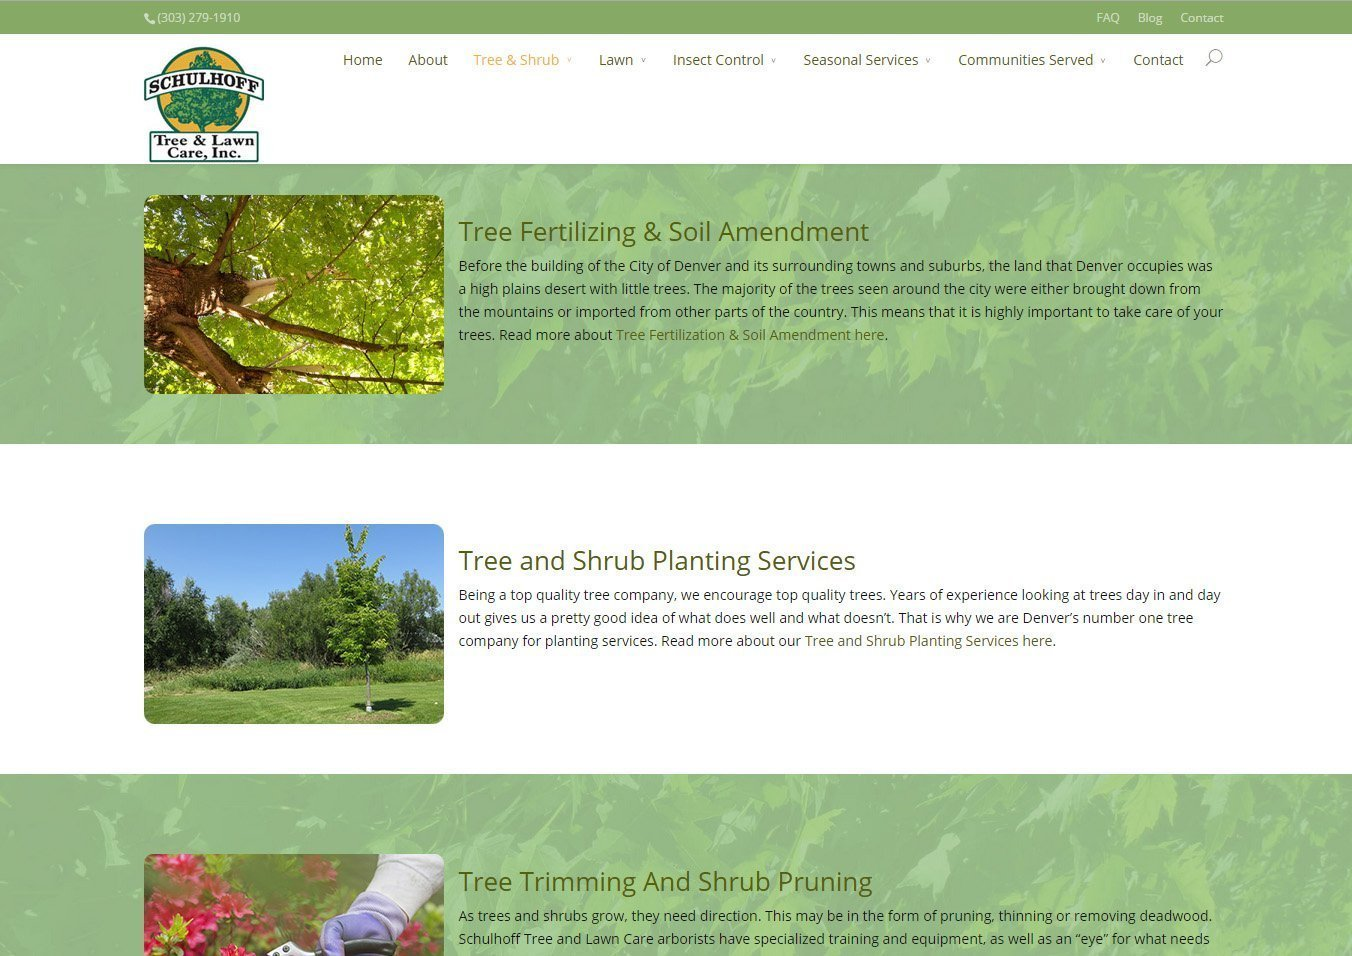 Schulhoff Tree & Lawn Care - Tree & Shrub